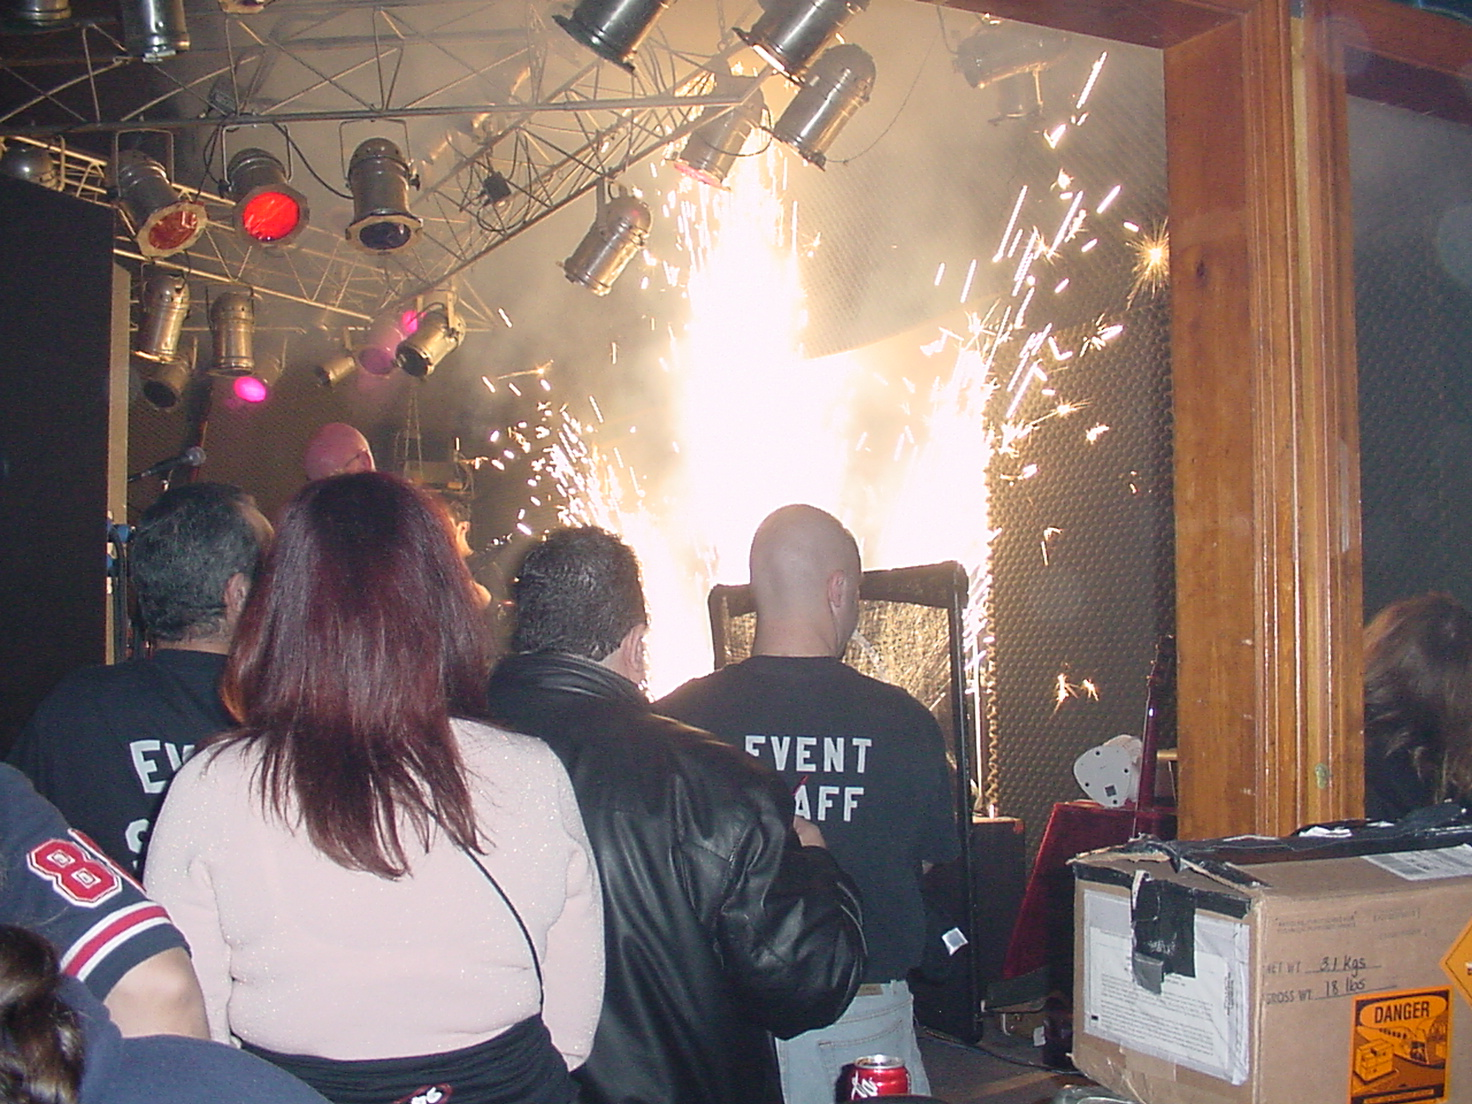 the station nightclub fire west warwick West warwick, ri — after years of effort, a dedication is planned sunday for the new memorial that honors the 100 victims of the feb 20, 2003 station nightclub fire.